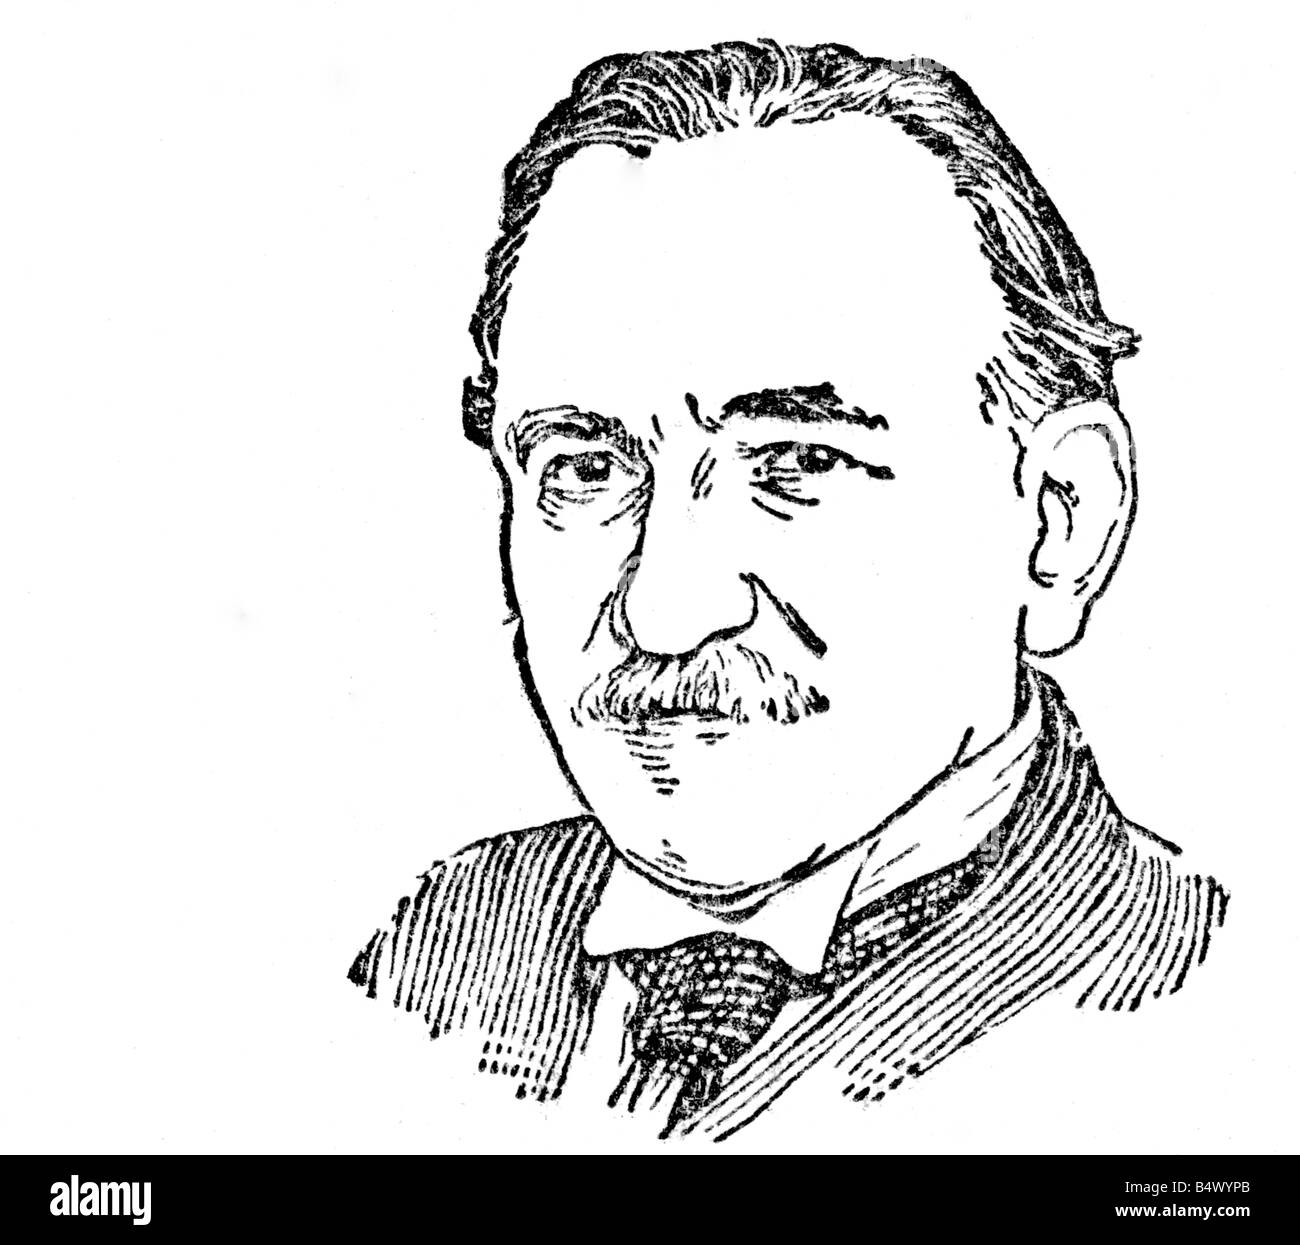 Foerster, Josef Bohuslav, 30.12.1859 - 29.5.1951, Czech composer, portrait, line drawing, , Additional-Rights-Clearances - Stock Image